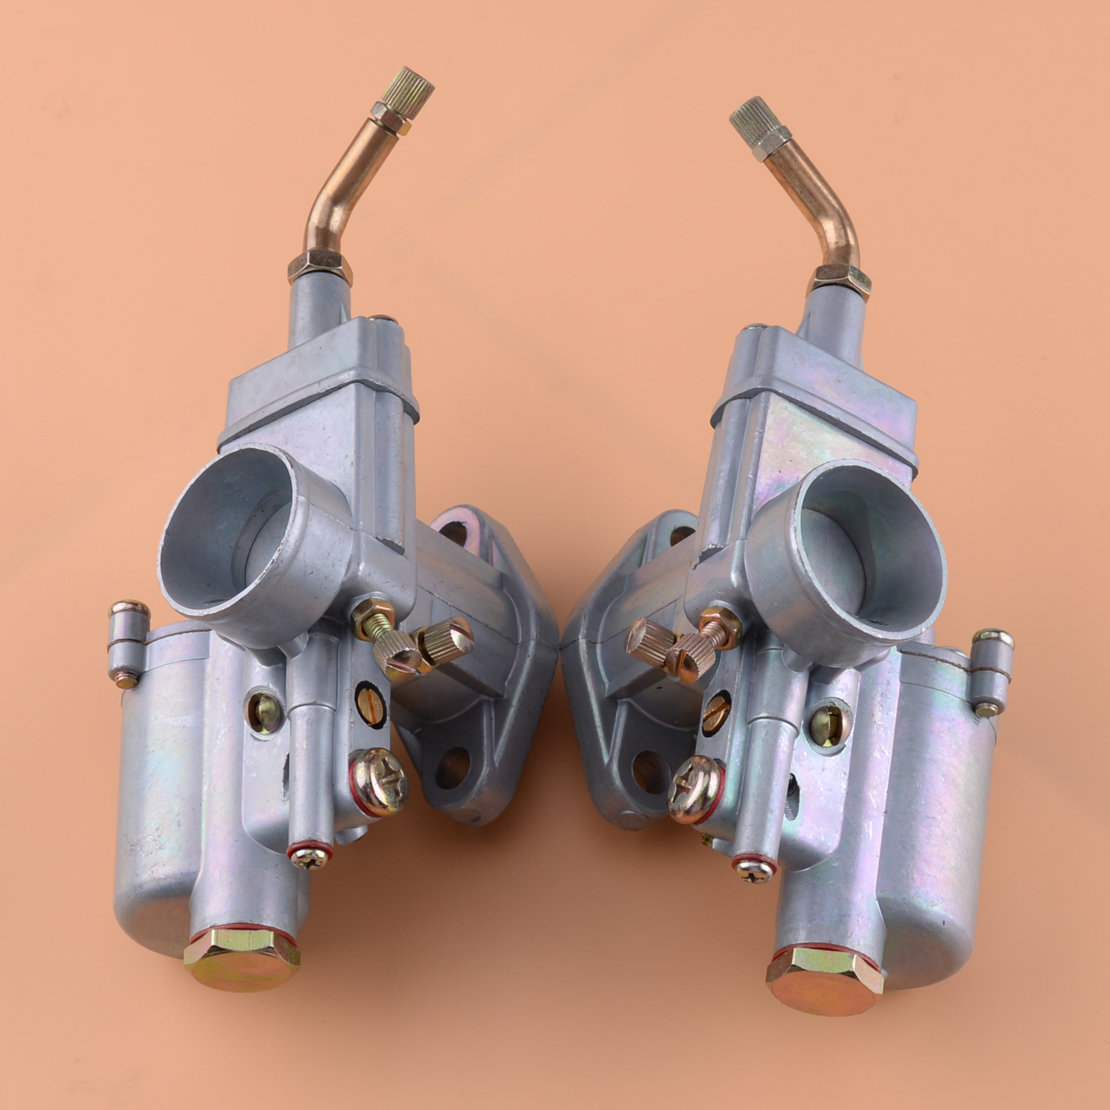 DWCX 1pair 28mm Carb Pair Vergaser Carburettor Carby fit for K302 BMW M72 MT URAL K750 MW DneprDWCX 1pair 28mm Carb Pair Vergaser Carburettor Carby fit for K302 BMW M72 MT URAL K750 MW Dnepr